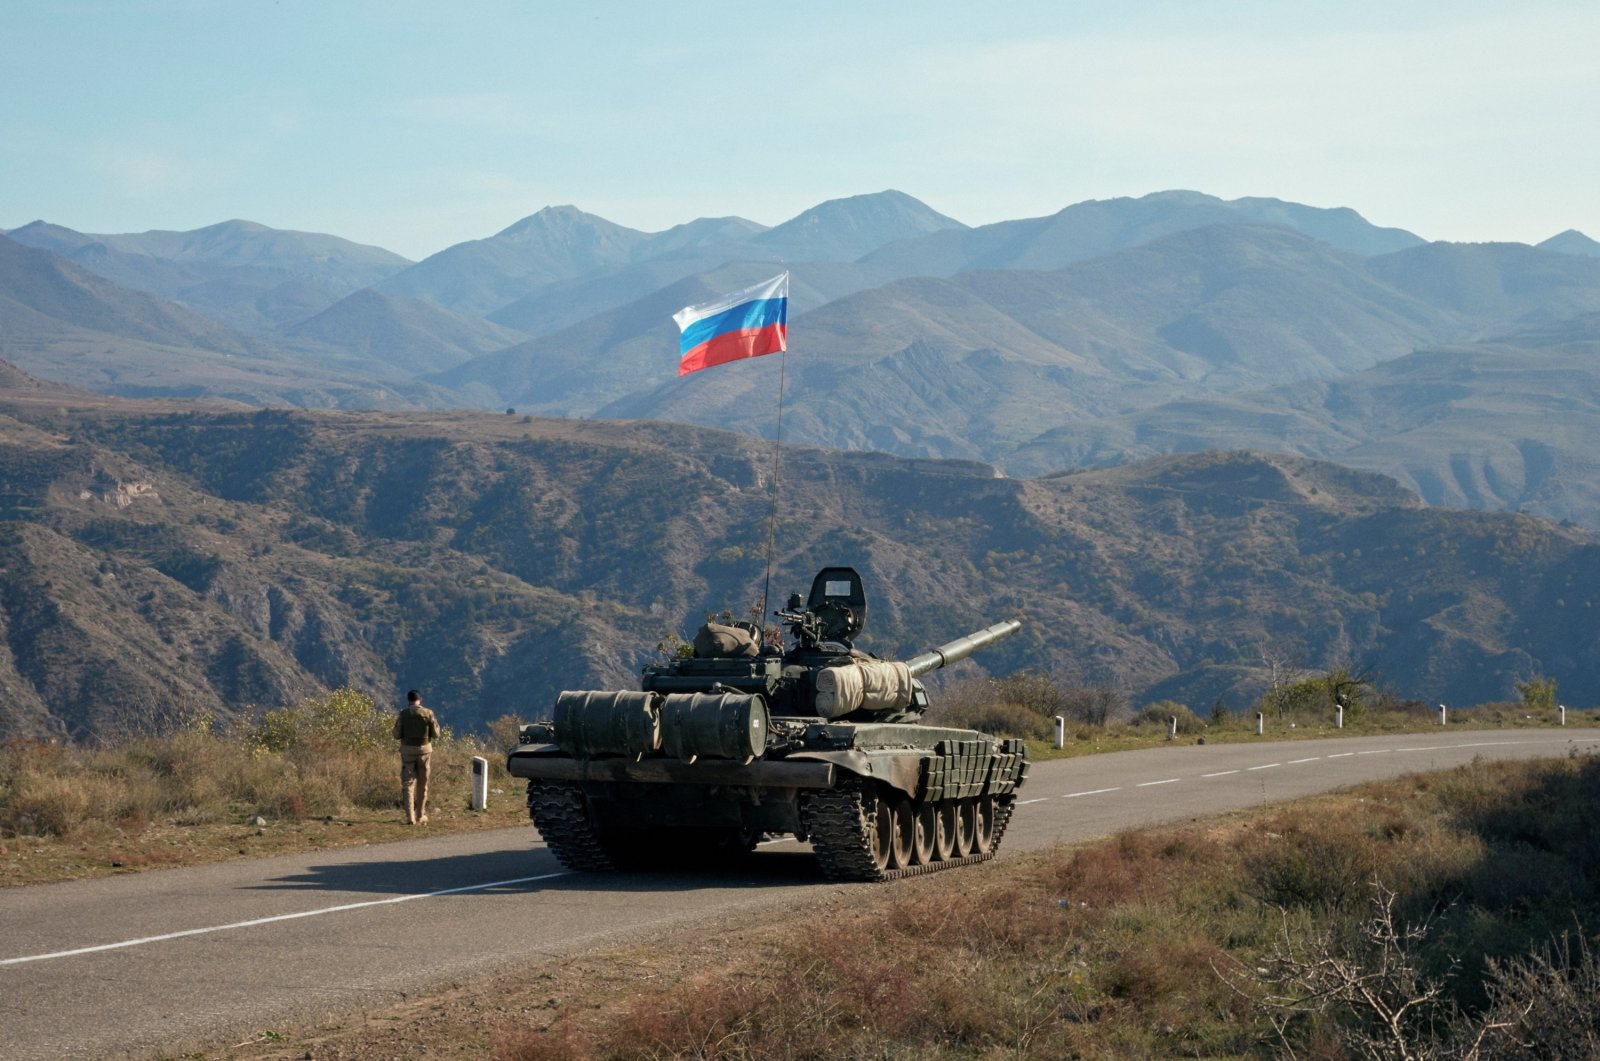 A member of the Russian peacekeeping troops walks by a tank near the border with Armenia, in the region of Nagorno-Karabakh, Azerbaijan, Nov. 10, 2020. (Reuters Photo)